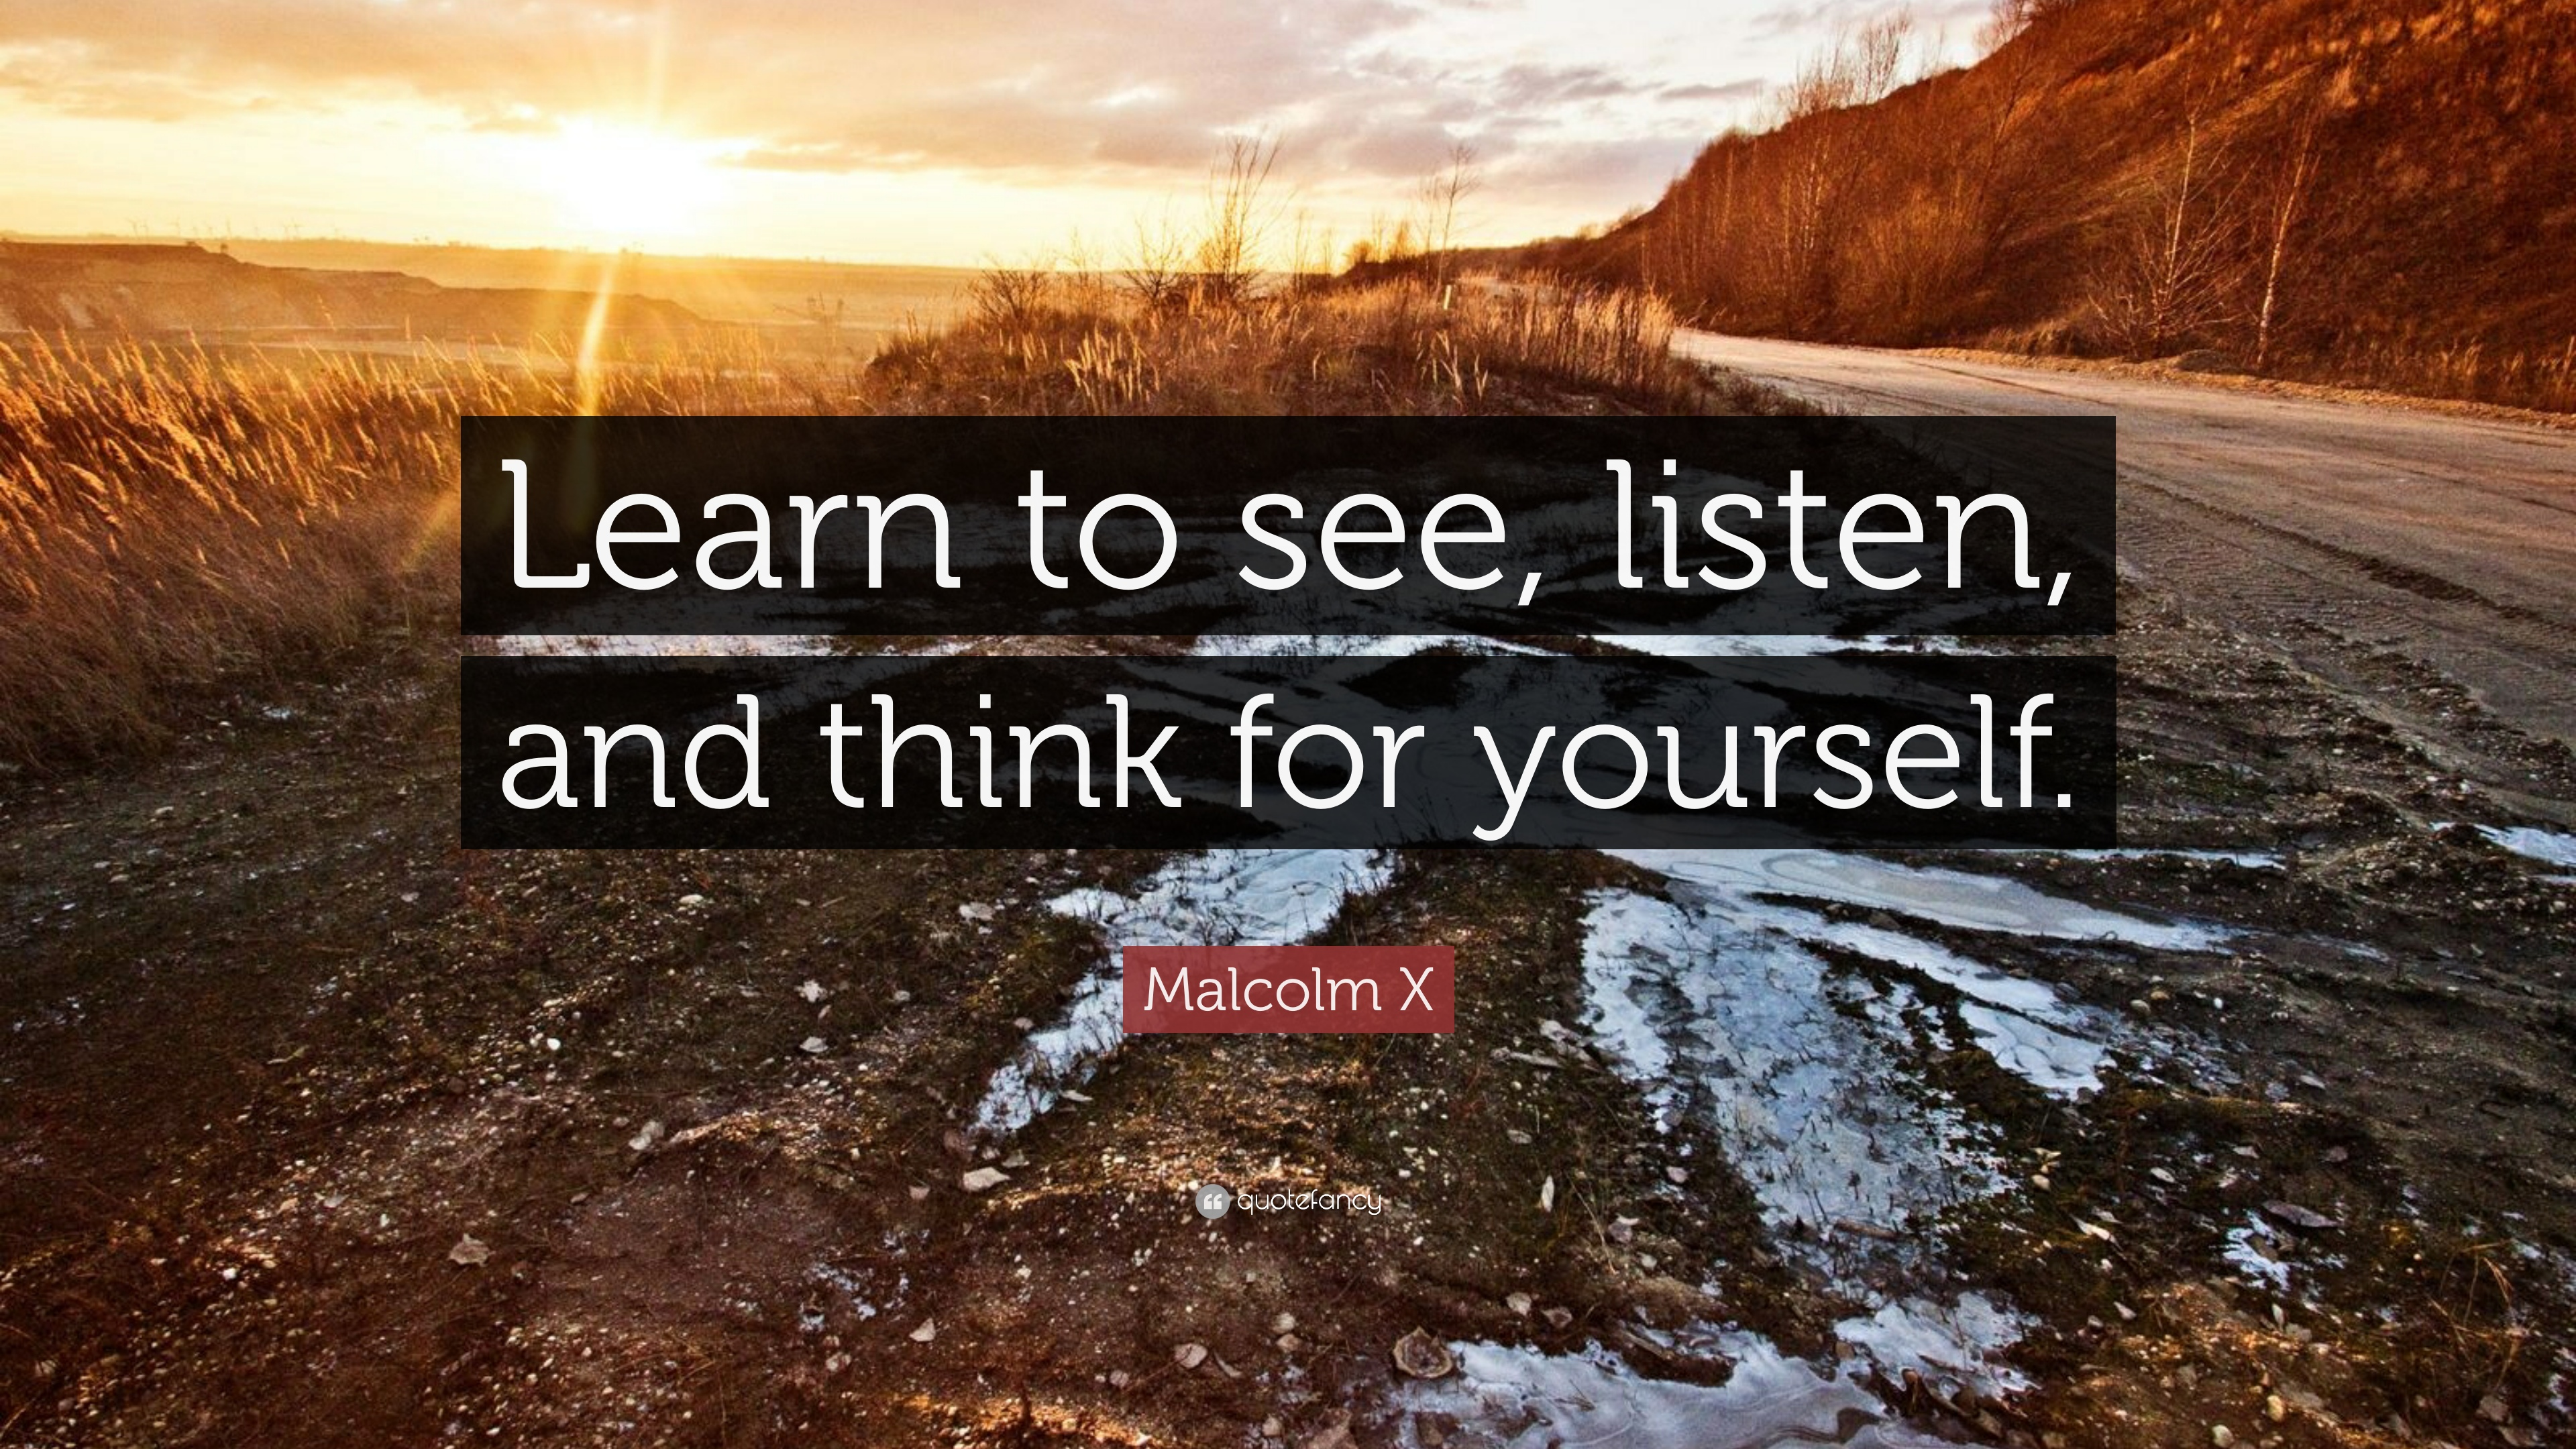 malcolm x quote   u201clearn to see  listen  and think for